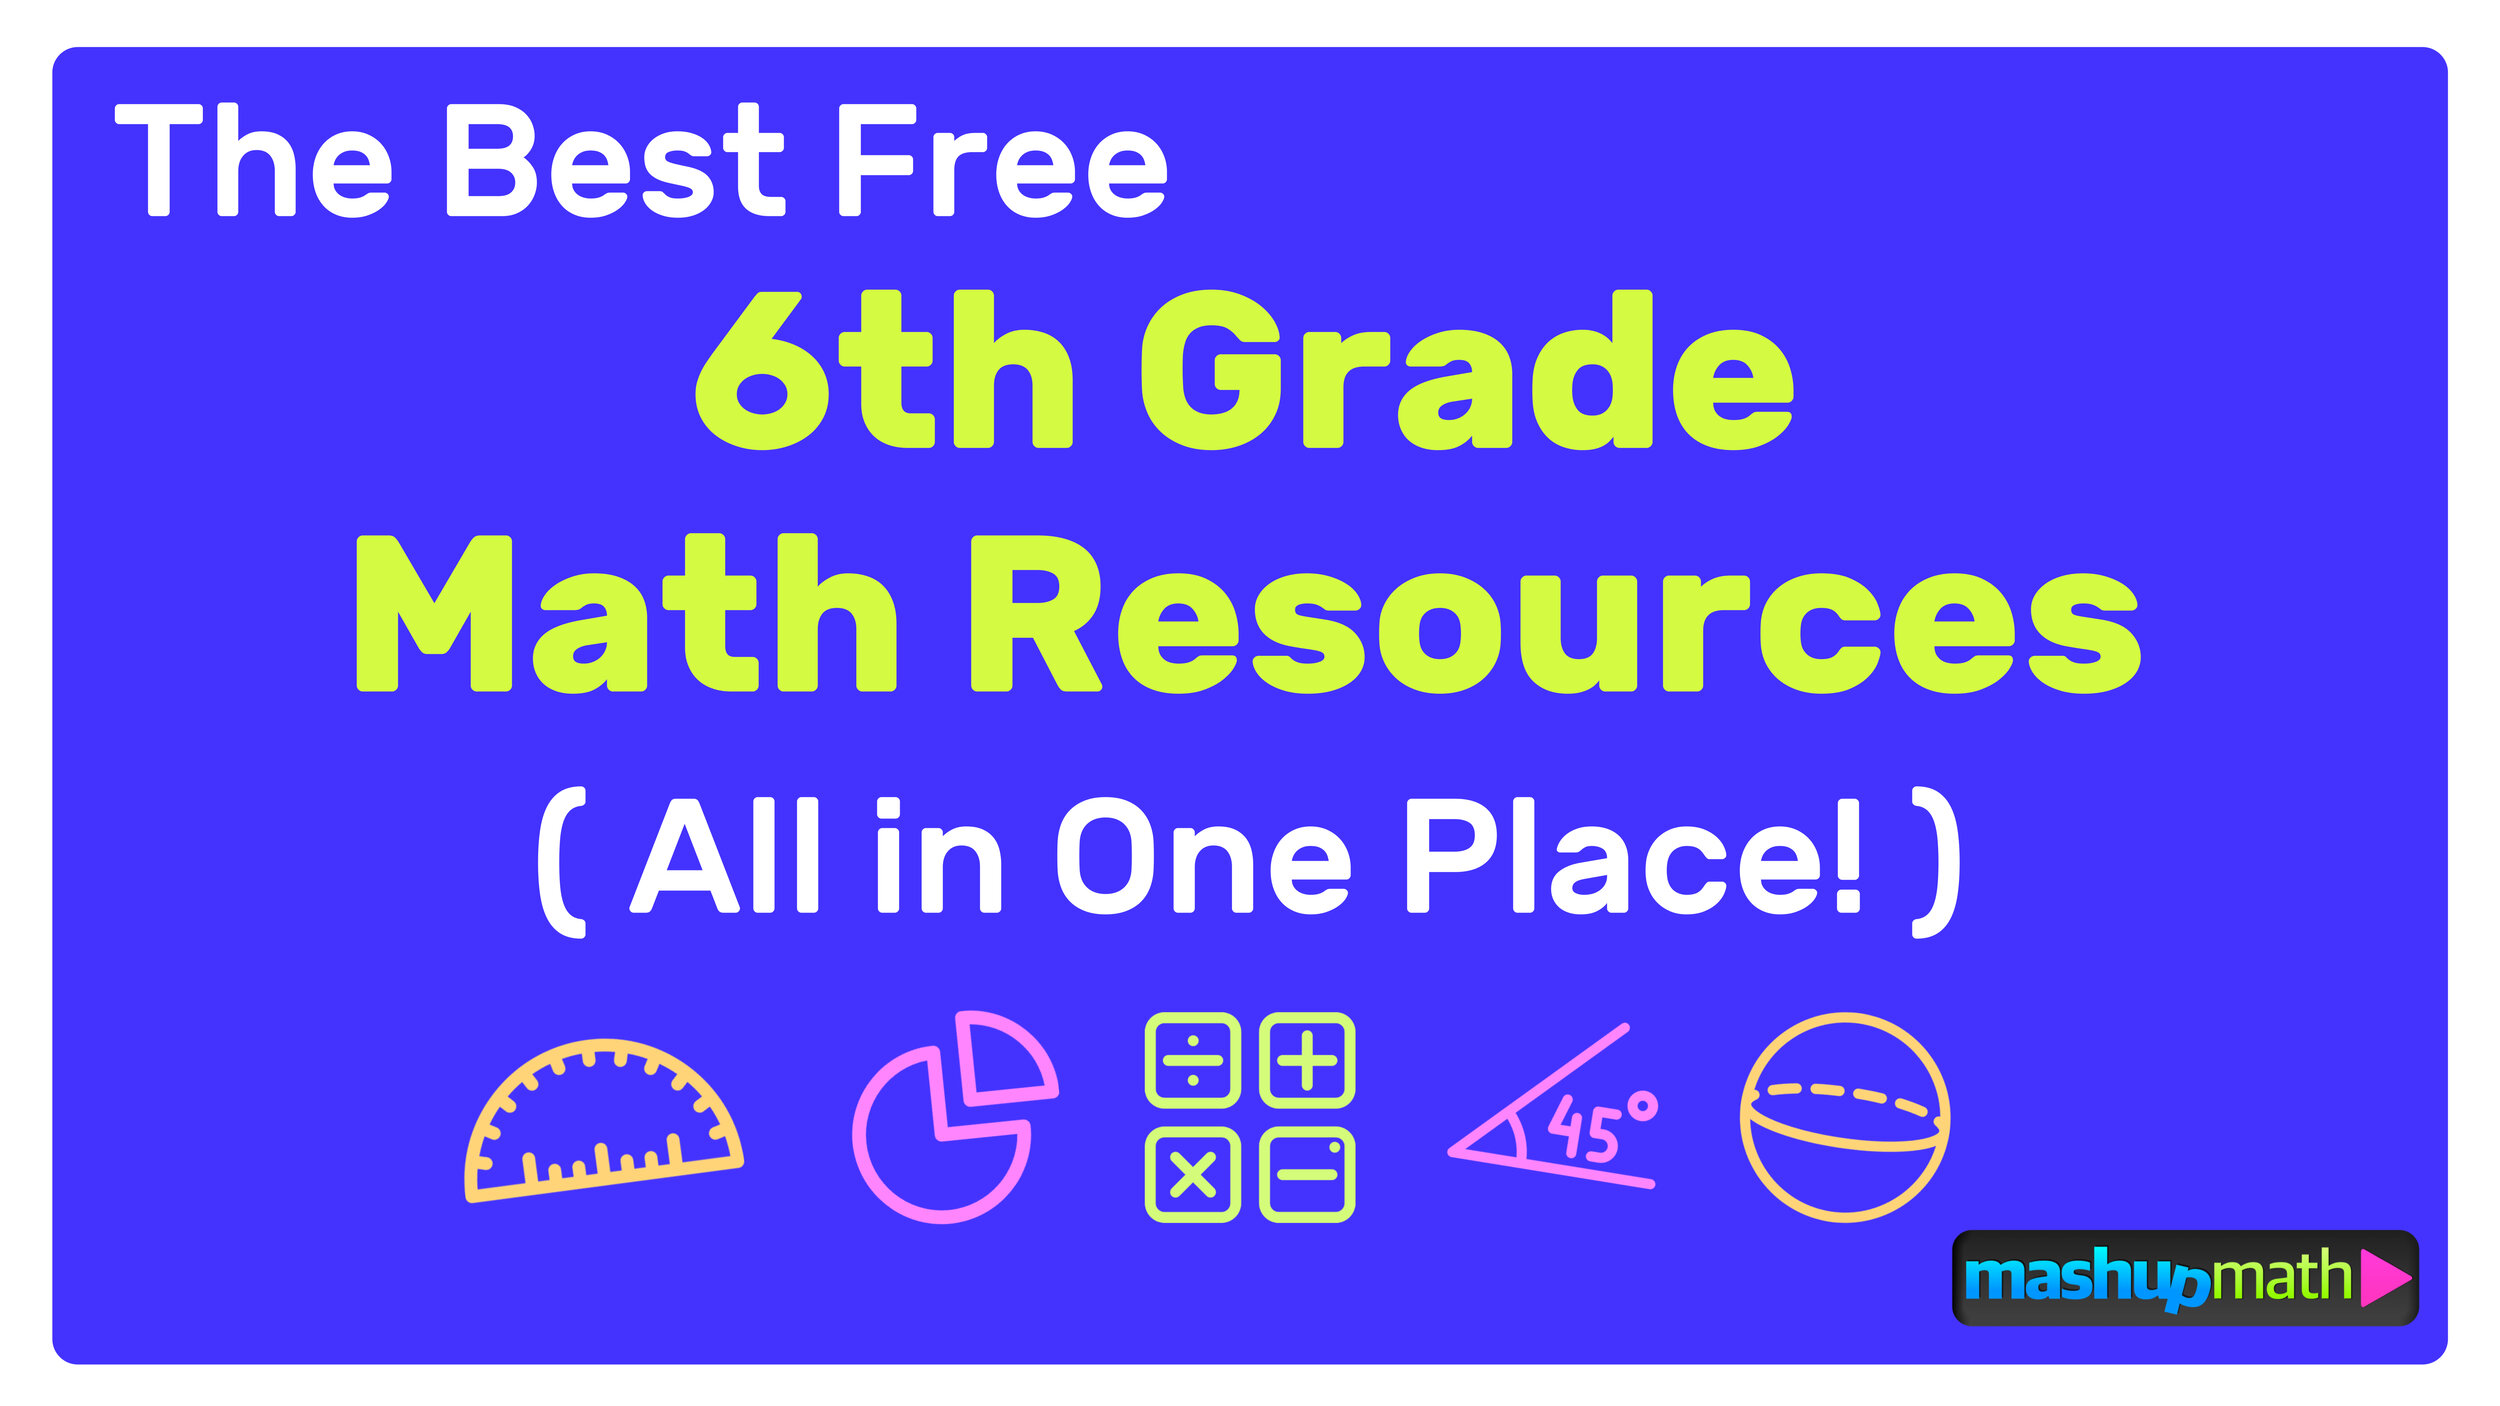 The Best Free 6th Grade Math Resources Complete List Mashup Math